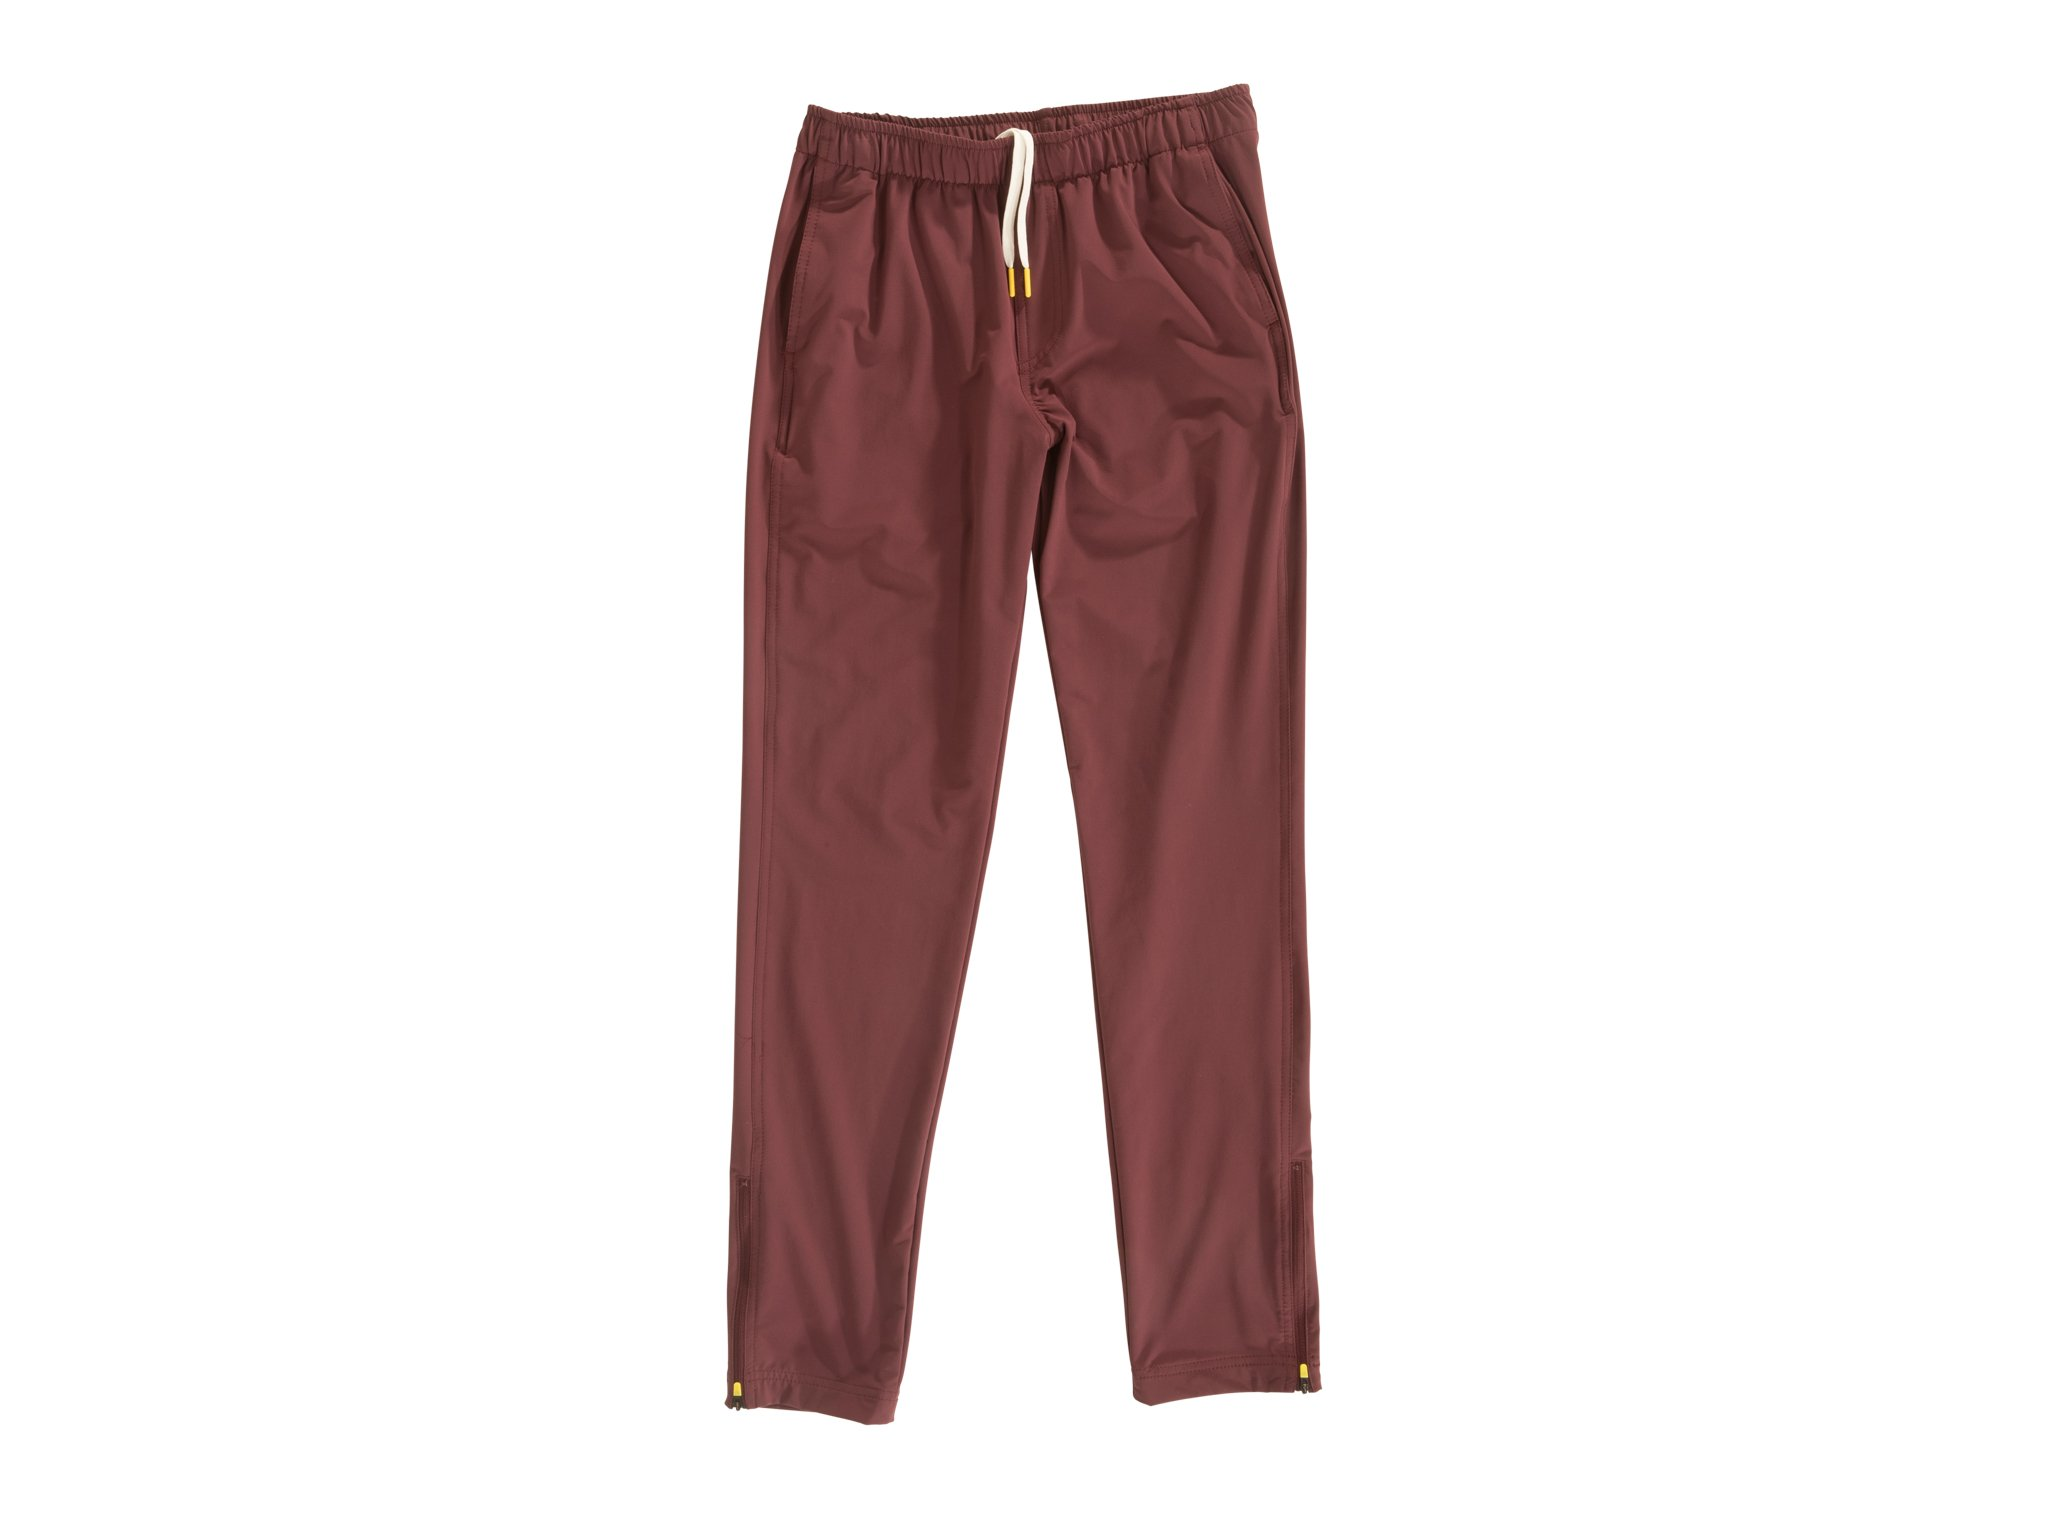 OLIVERS Apparel, Water Repellant, Athletic Cut, 4-Way Stretch, Bradbury Jogger Pants, 31 Inch Inseam - Crimson - Large by OLIVERS (Image #5)